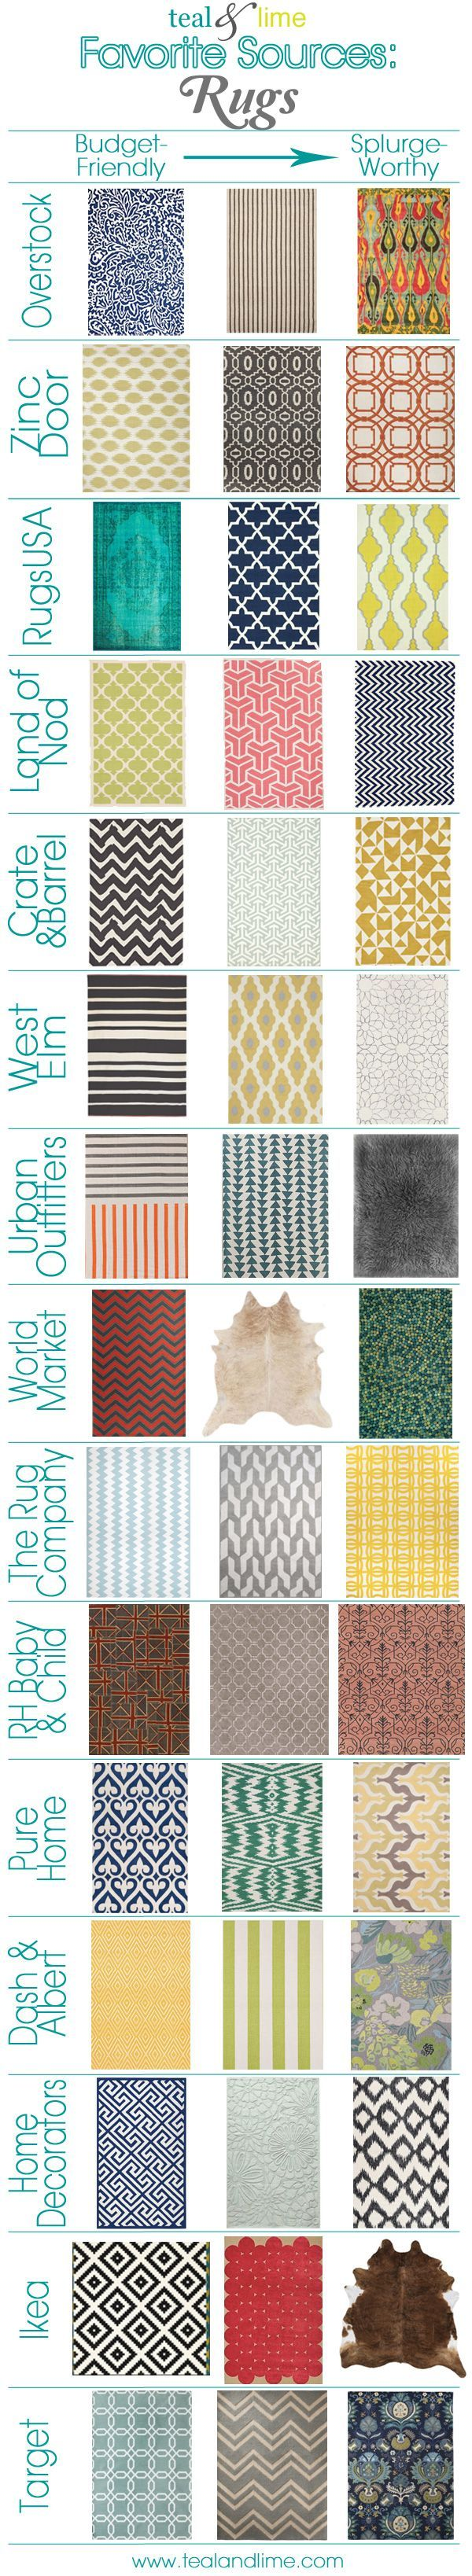 Great Sources for Area Rugs (sadly, I cannot afford some lovely, hand-knotted Persian).